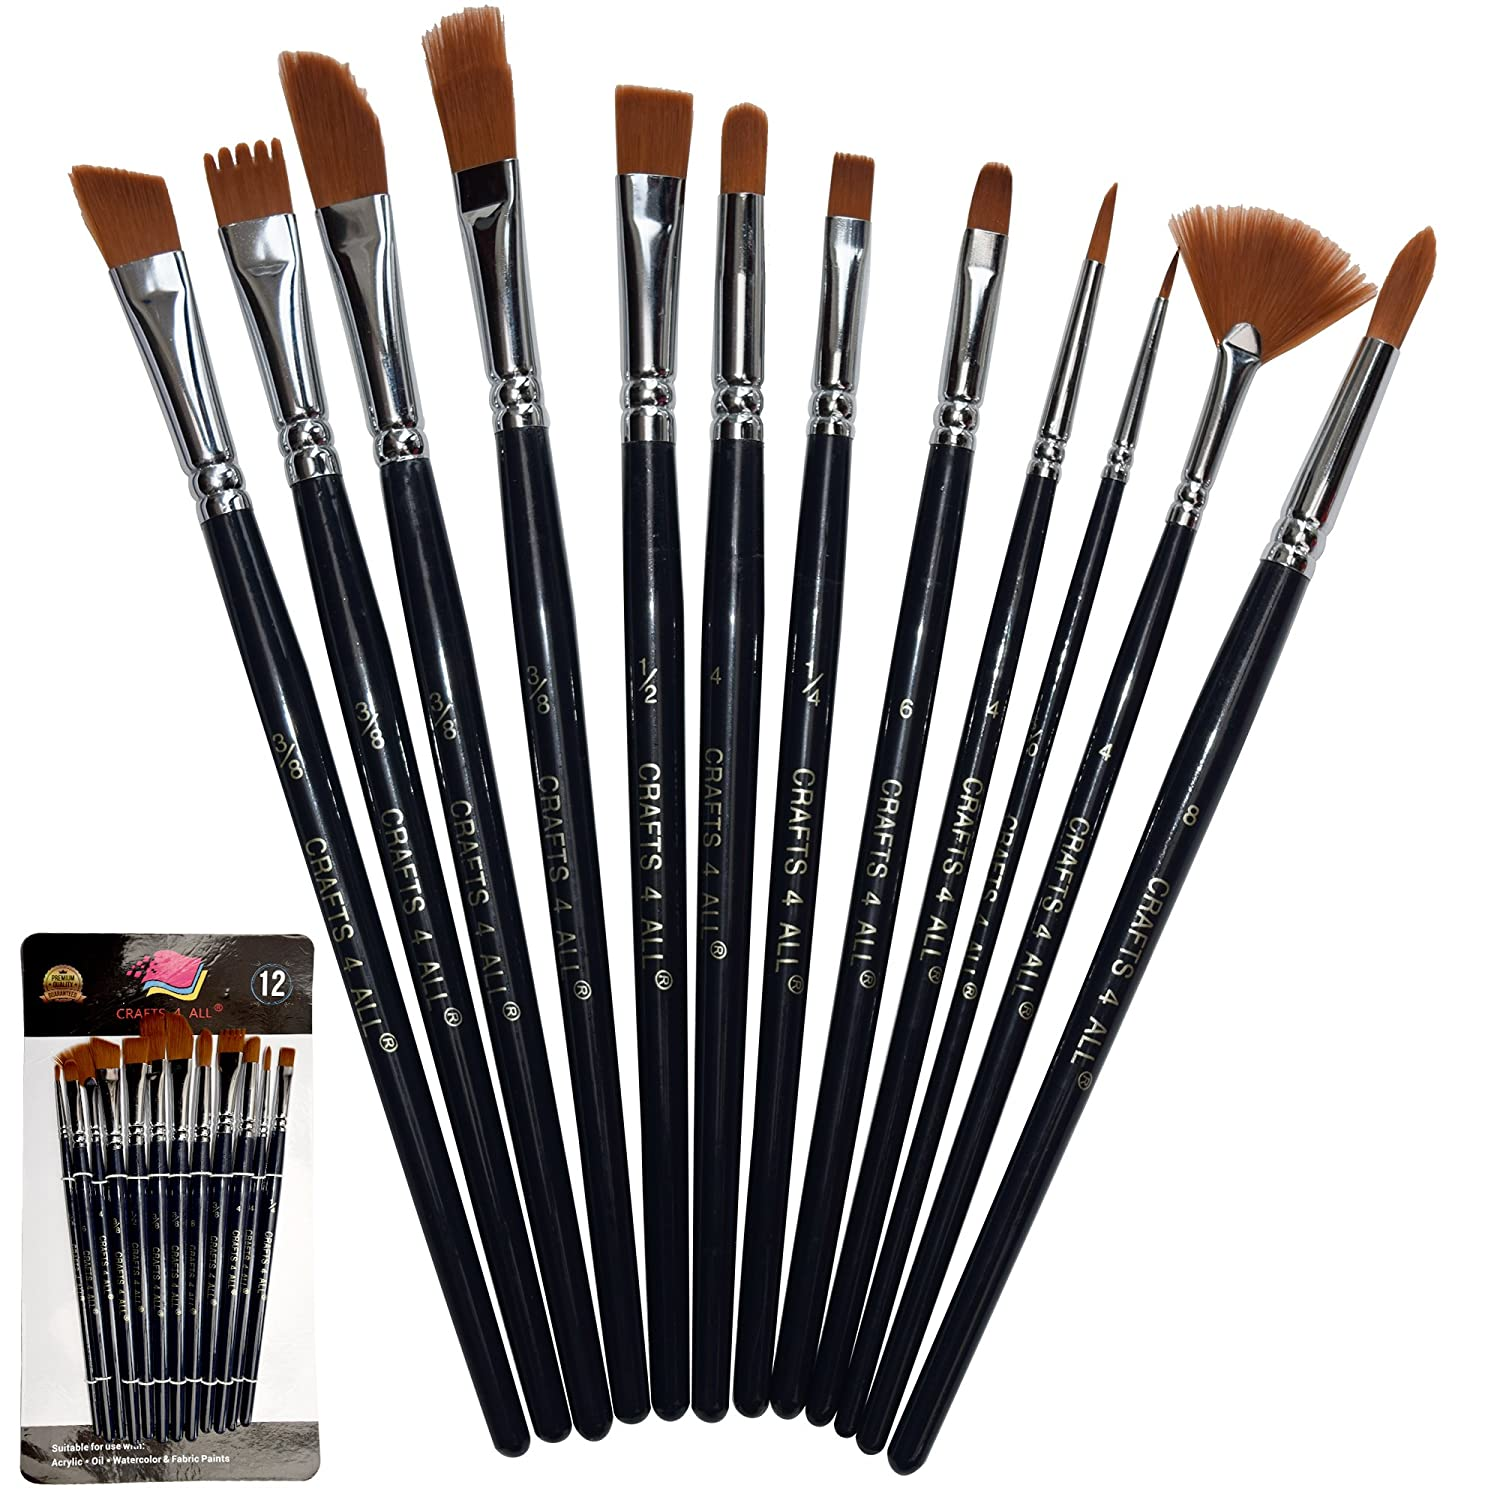 Paint Brushes Set 10 Pieces Professional Fine Tip Paint Brush Set Round Pointed Tip Nylon Hair Artist Acrylic Paints Brush for Watercolor Oil Painting by Crafts 4 All (10) paint brush 10 set